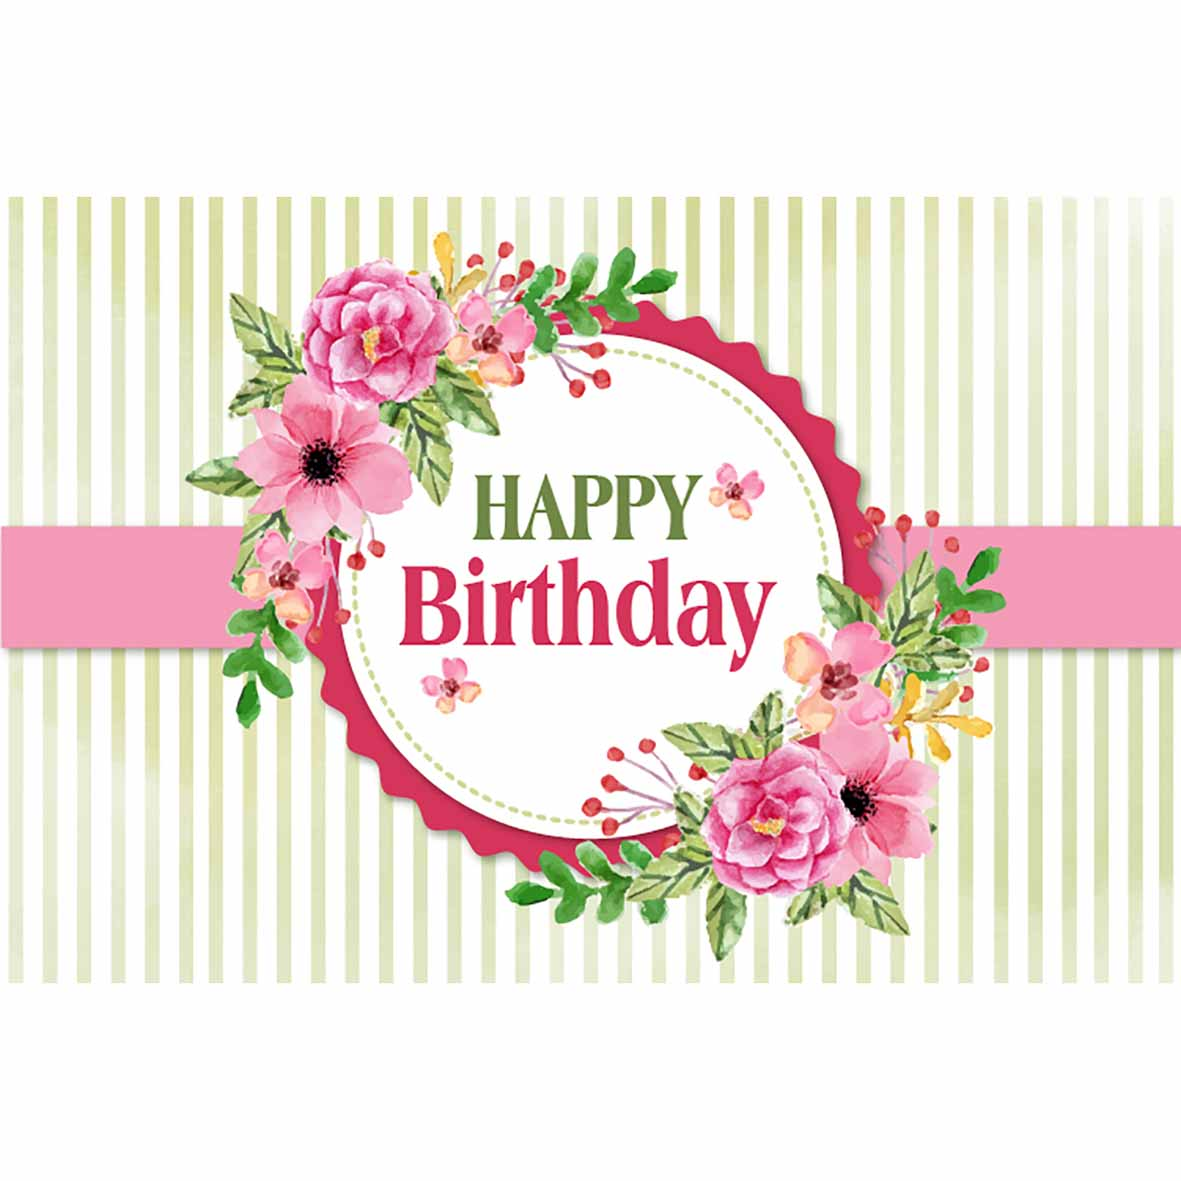 Card Happy Birthday Pink Green Stripes With Flower Greeting Cards Invitations Home Garden